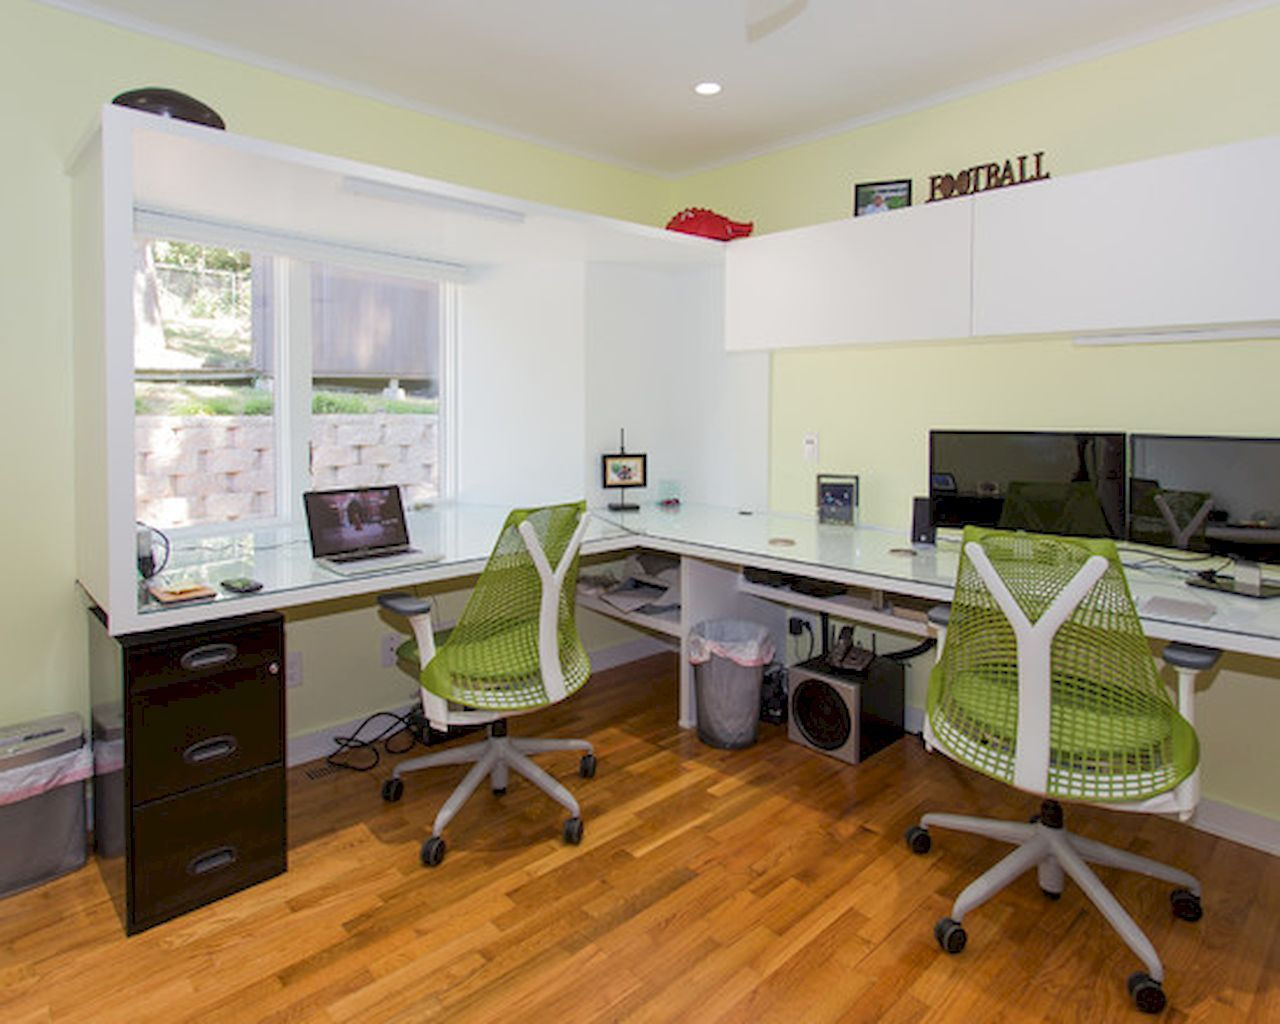 Home office interior ideas awesome  best contemporary home office design ideas